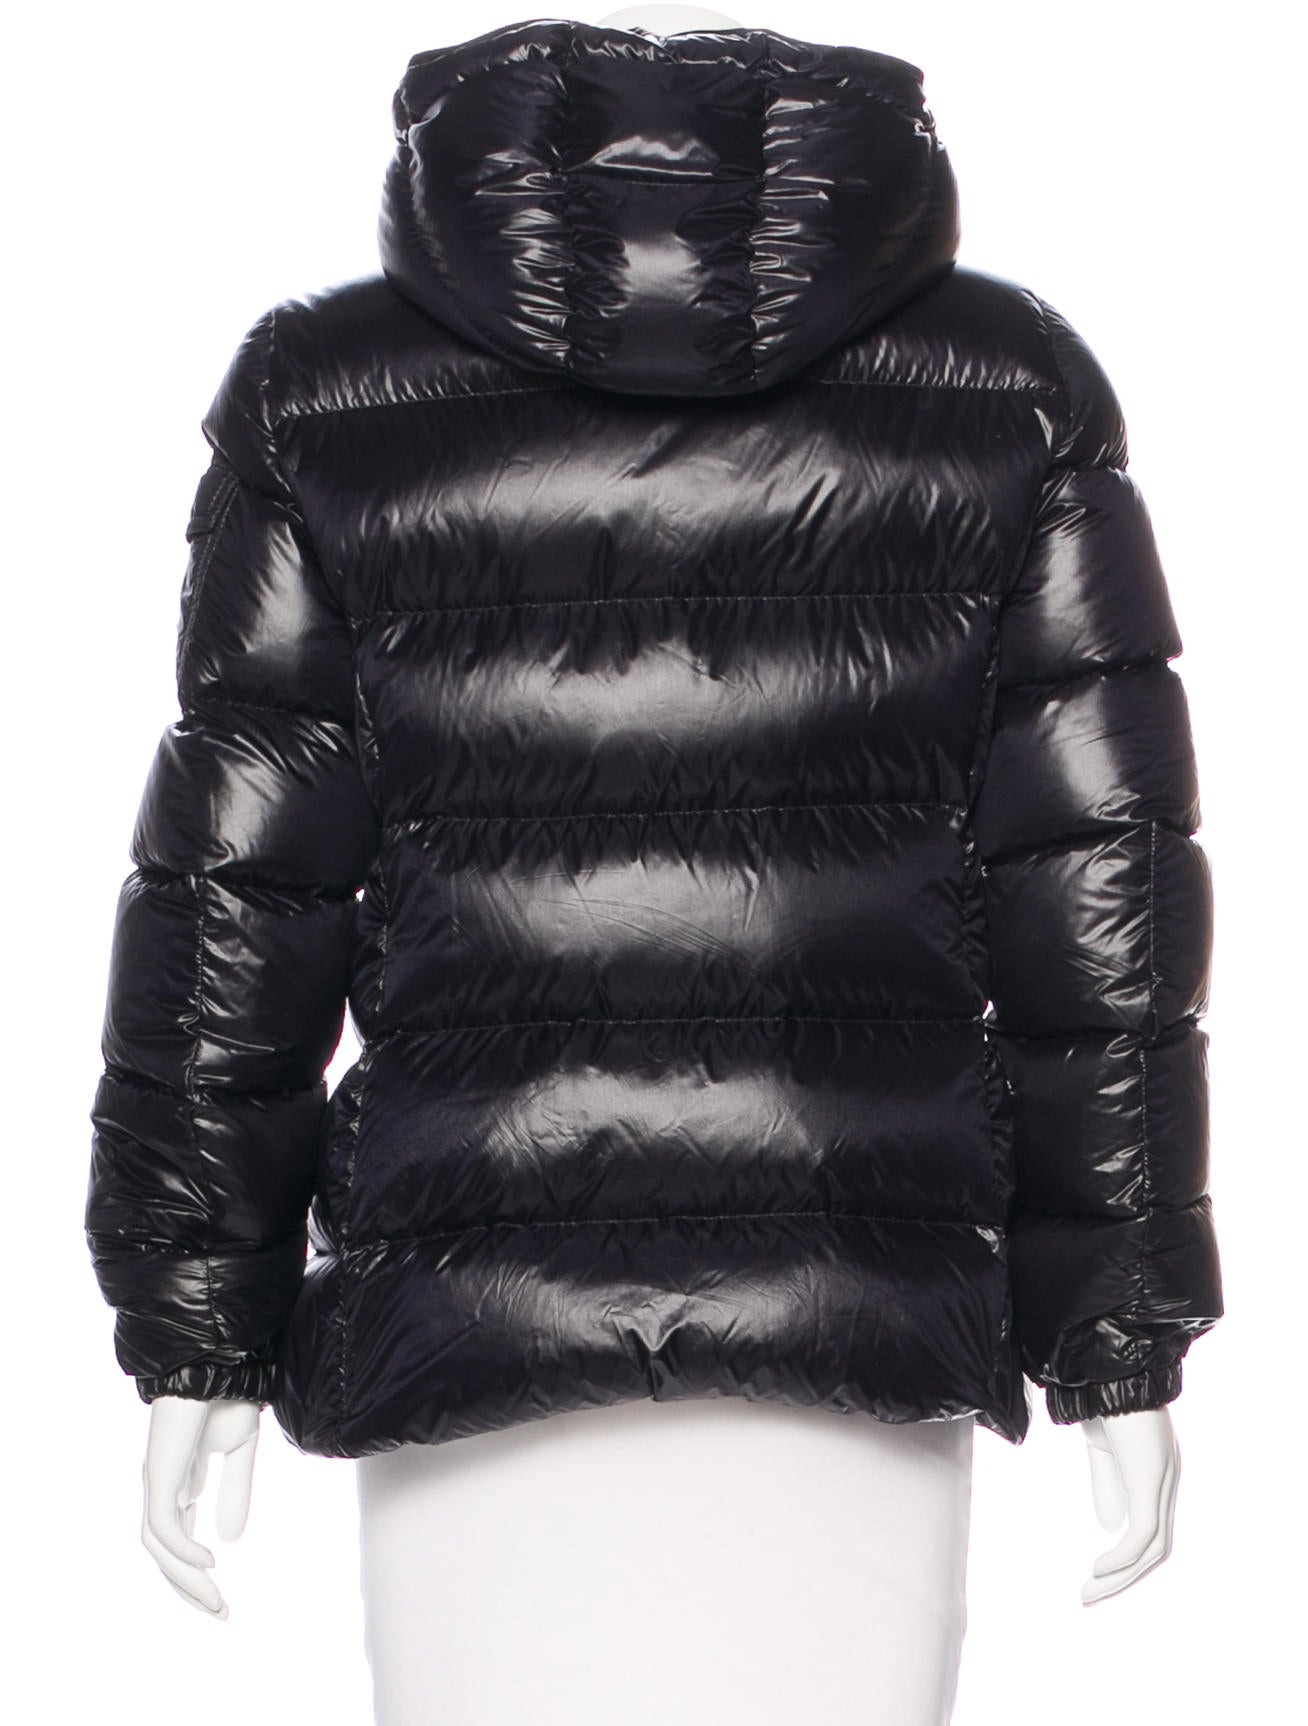 Moncler Berre Puffer Jacket Clothing MOC26205 | The RealReal